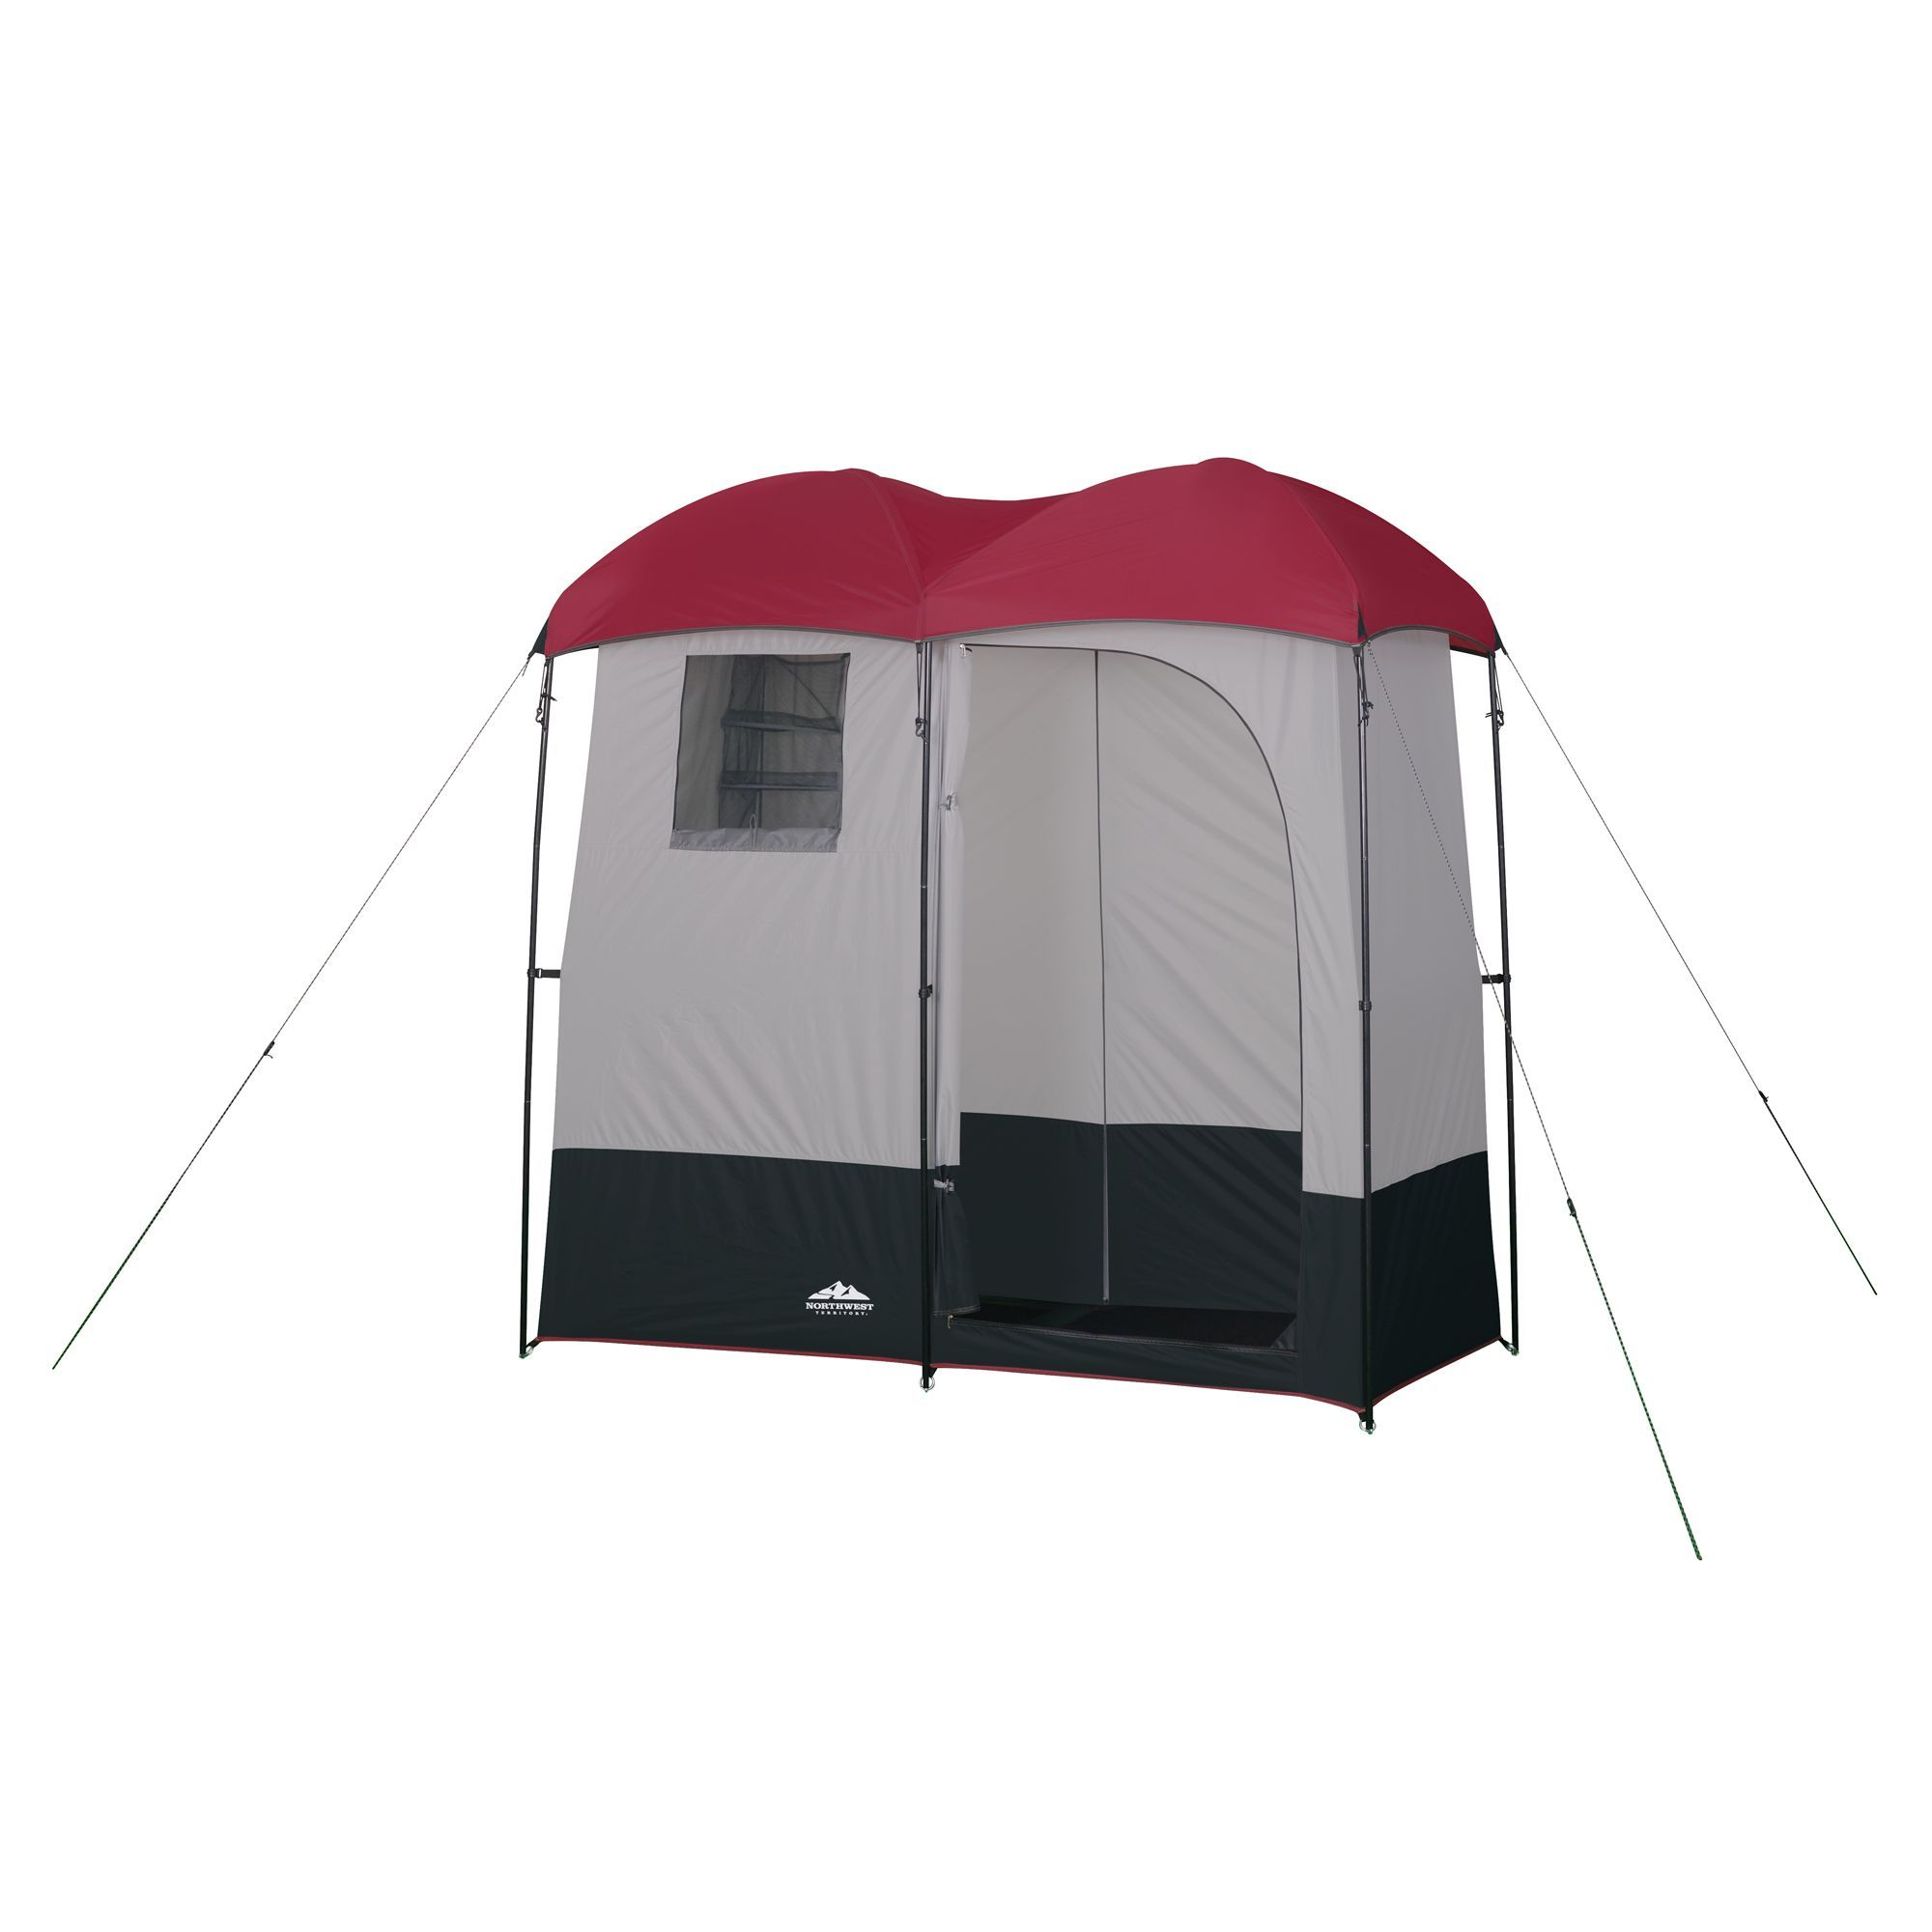 Double Shower Changing Room Kmart With Images Camping Shower